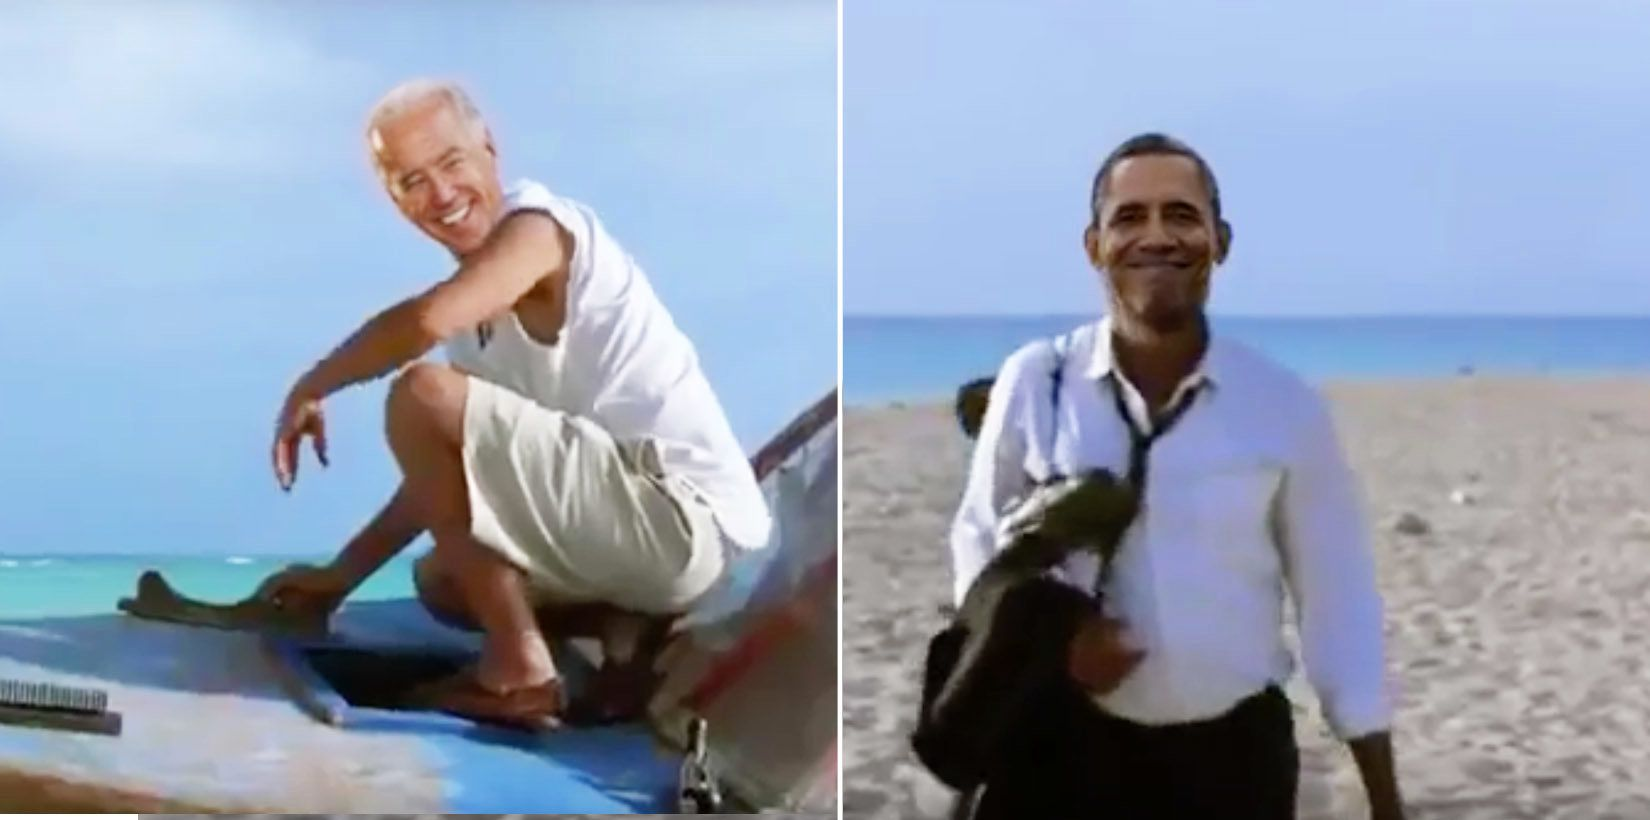 Oh God, The Ending Of 'Shawshank Redemption,' But With Obama And